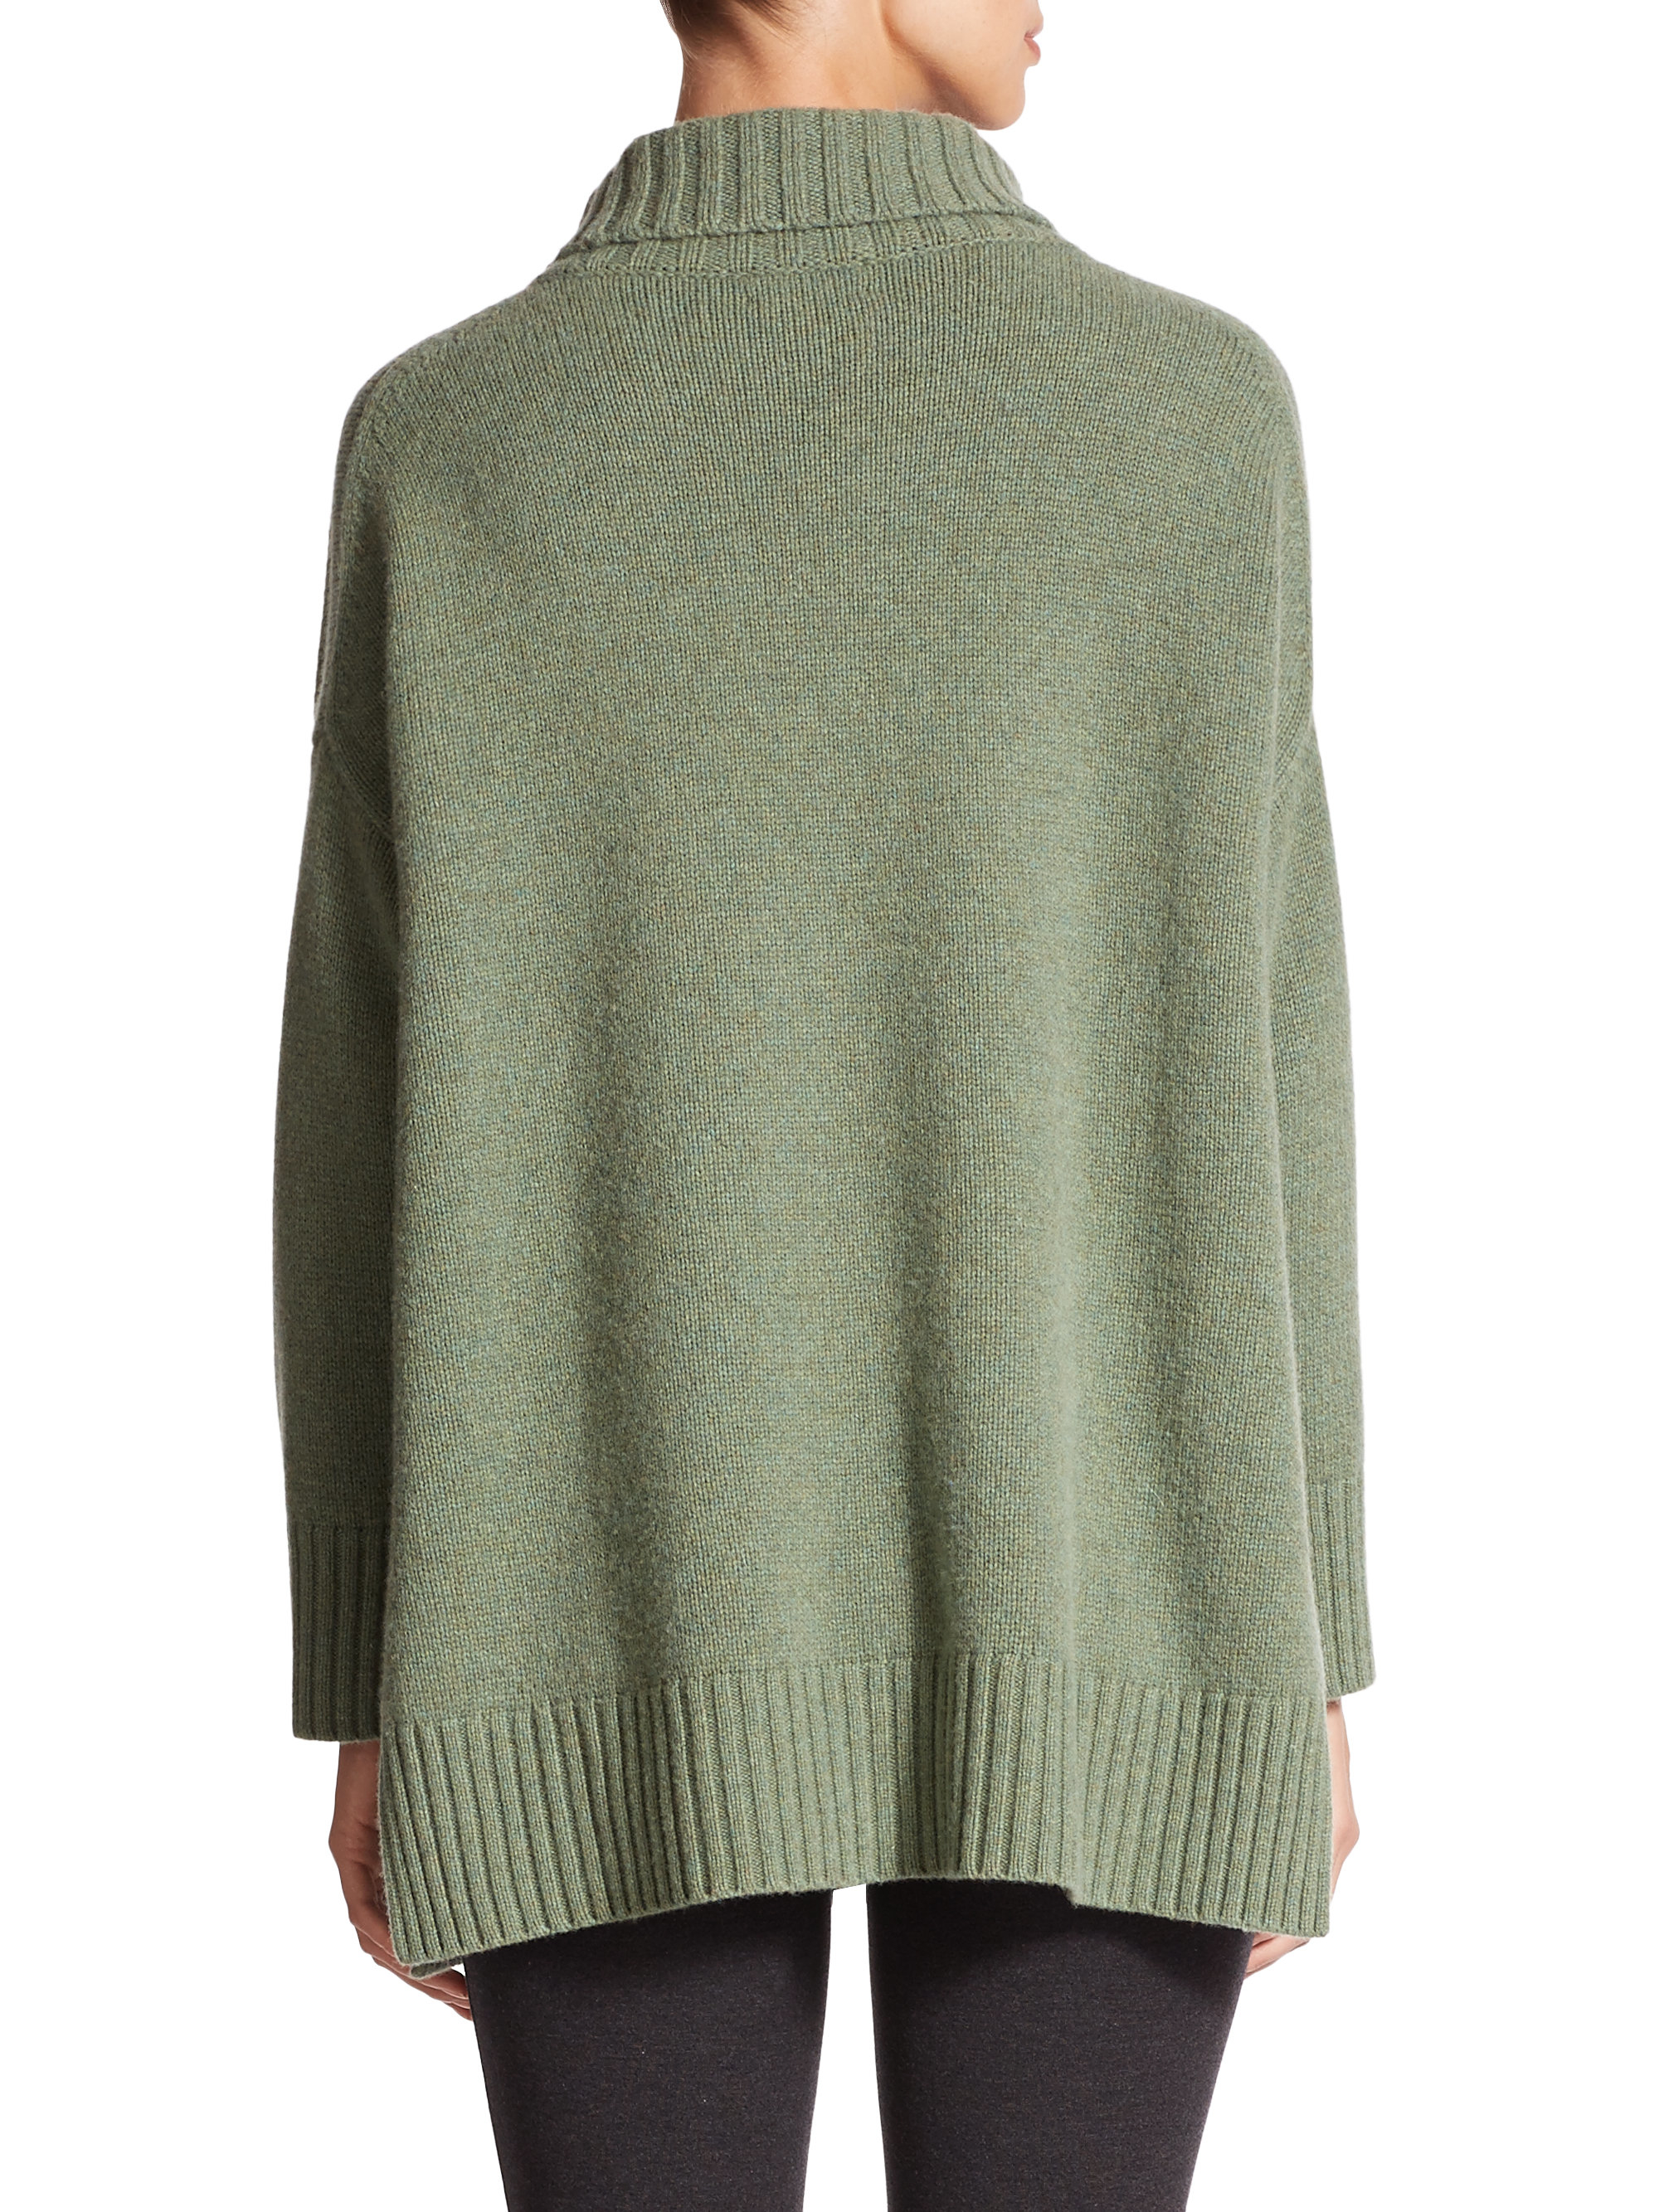 Polo ralph lauren Wool & Cashmere Oversized Turtleneck Sweater in ...